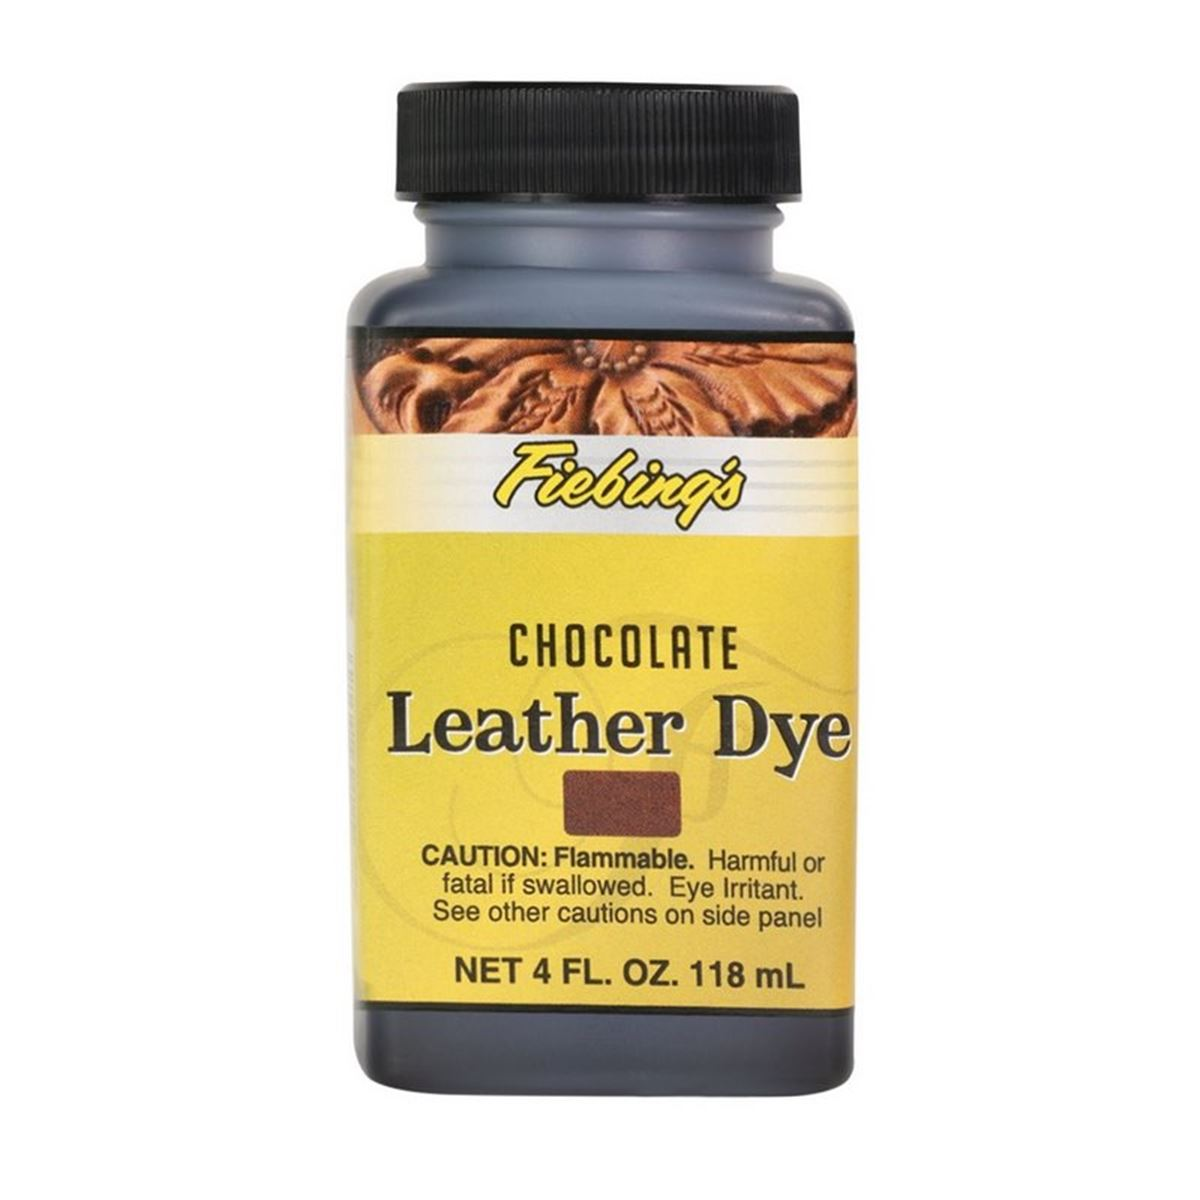 Teinture pour cuir FIEBING'S Leather dye - CHOCOLAT - CHOCOLATE